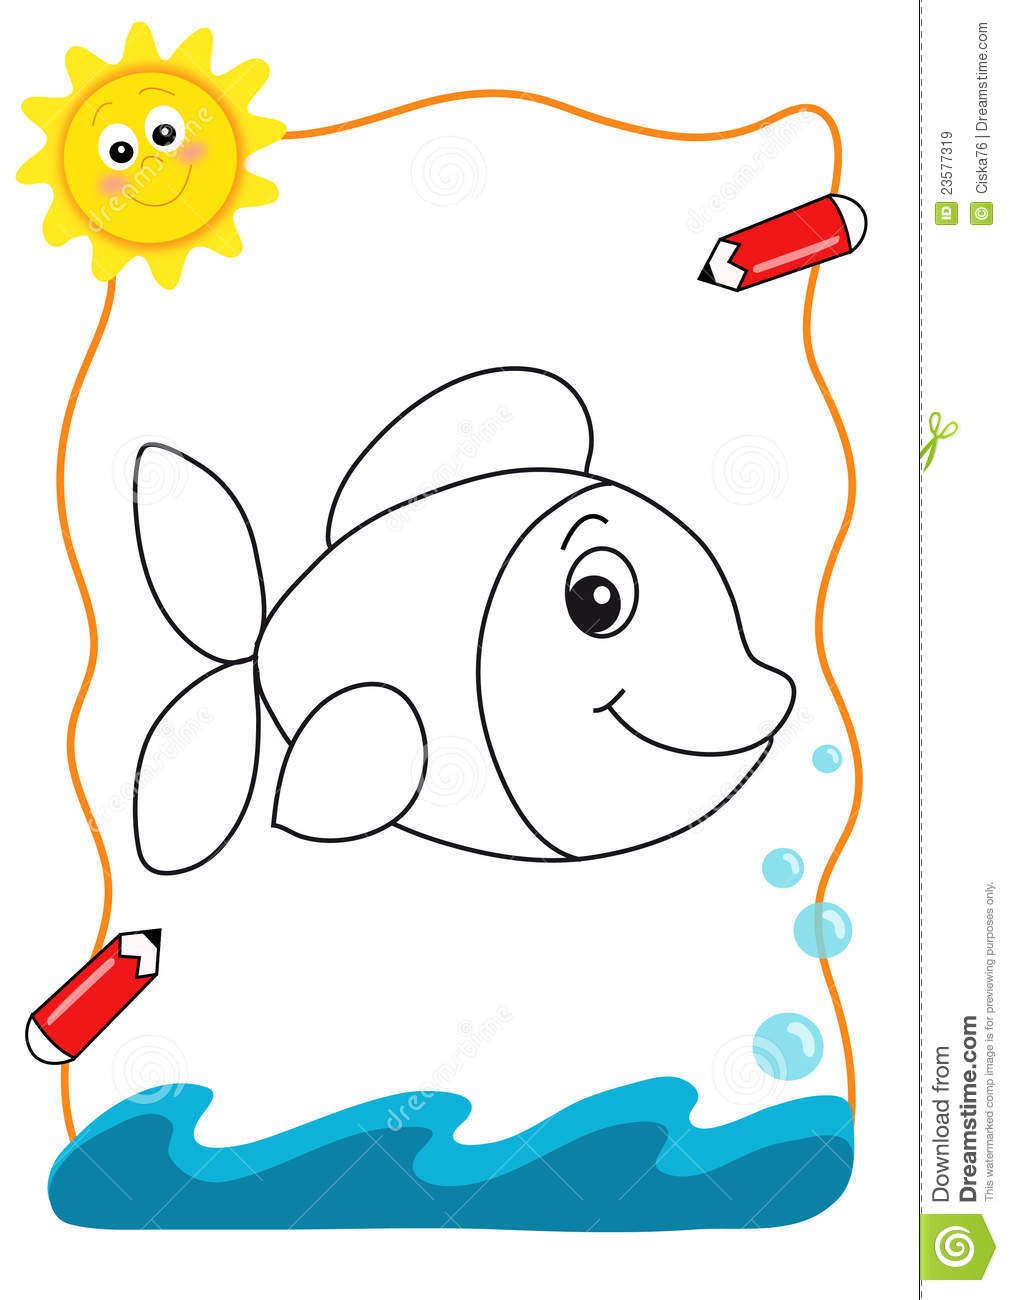 Coloring book sea the fish royalty free stock images for Colorful fish book